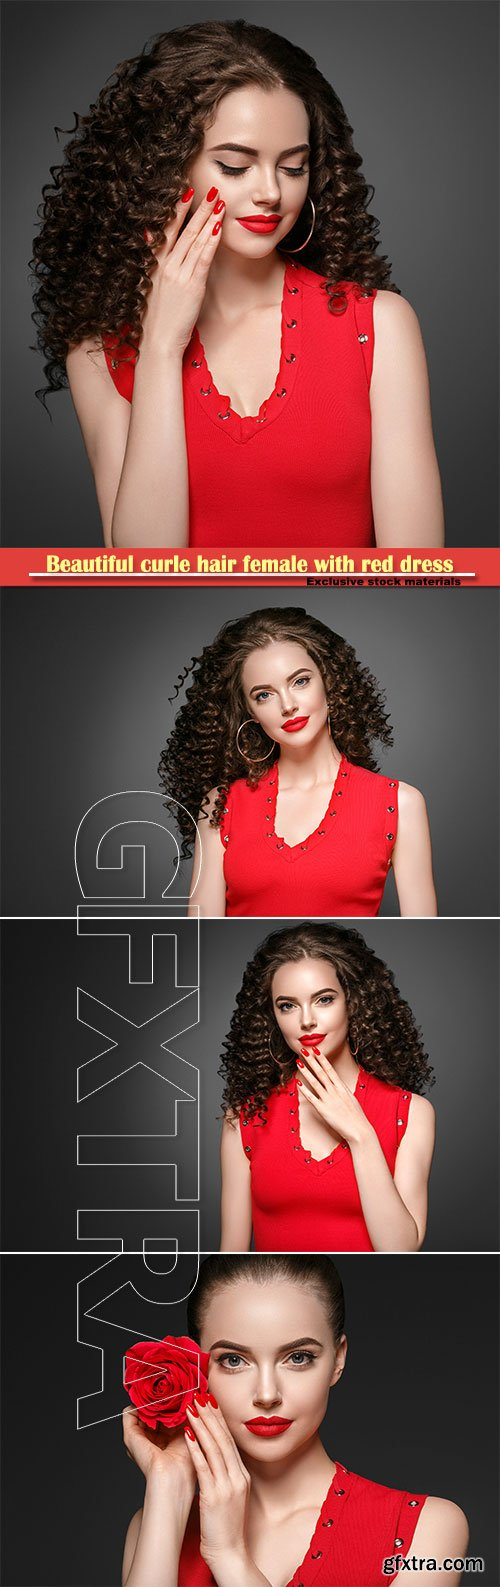 Beautiful curle hair female with red dress